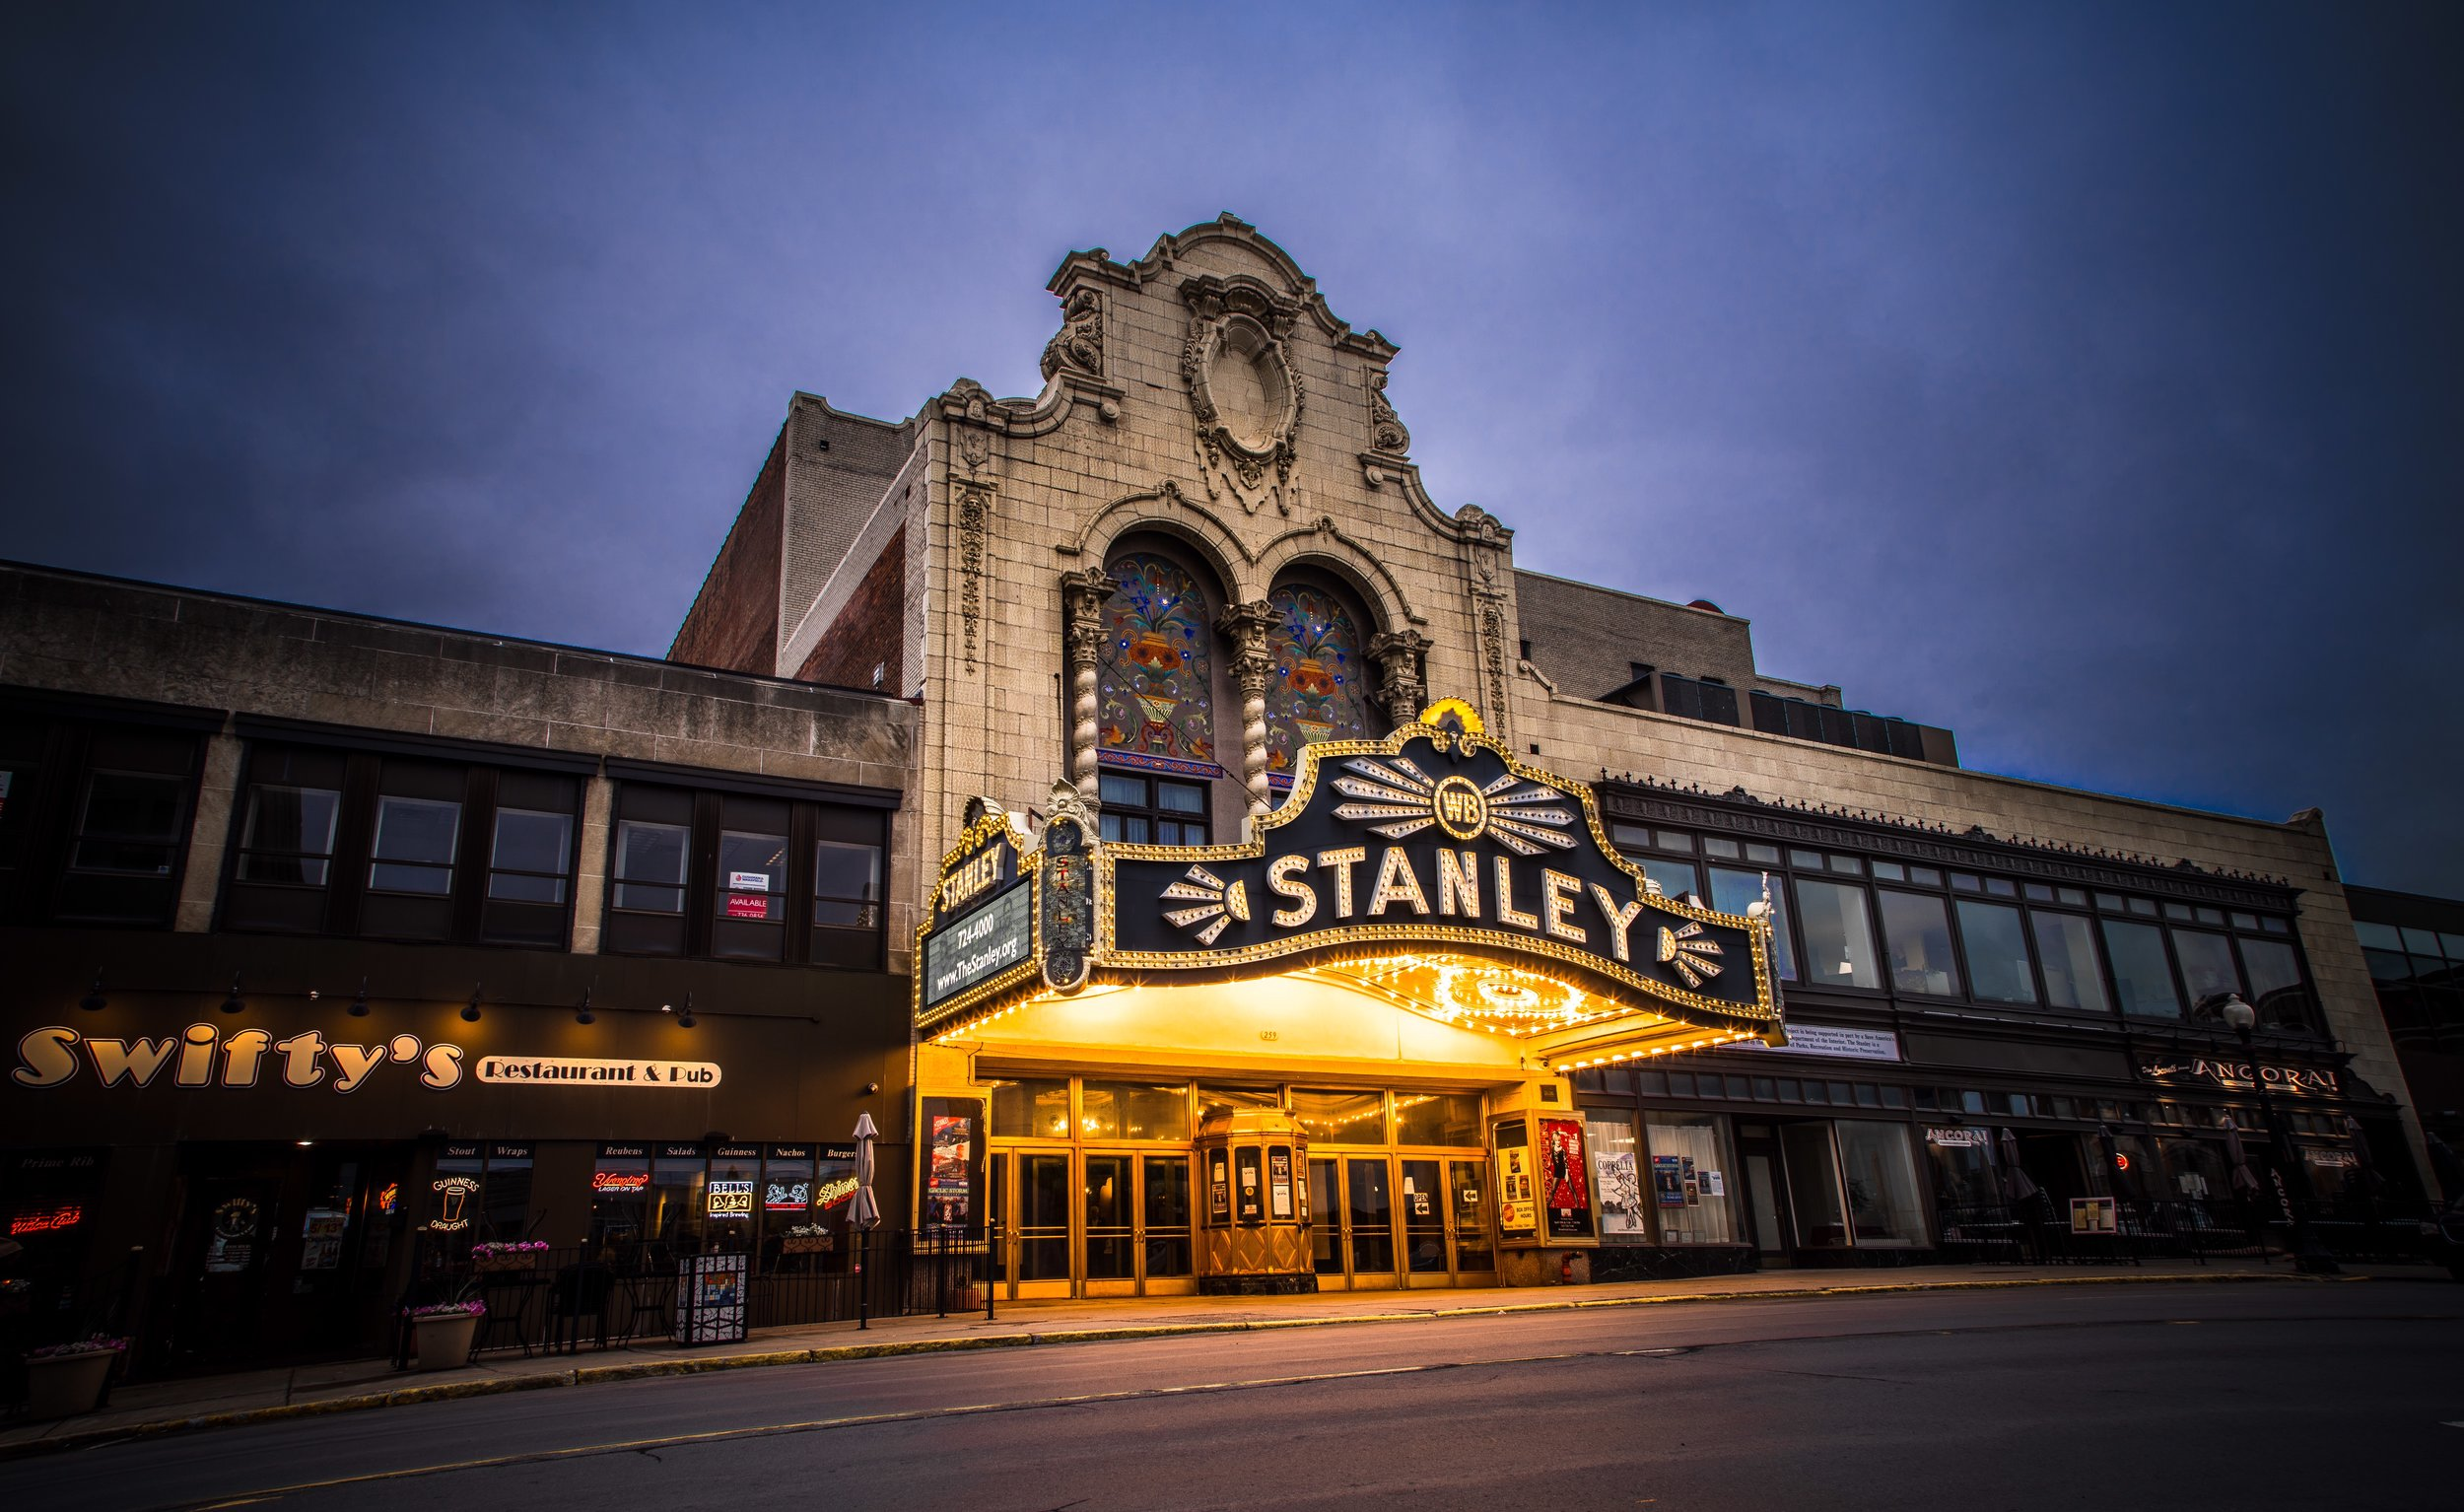 The Stanley Theater